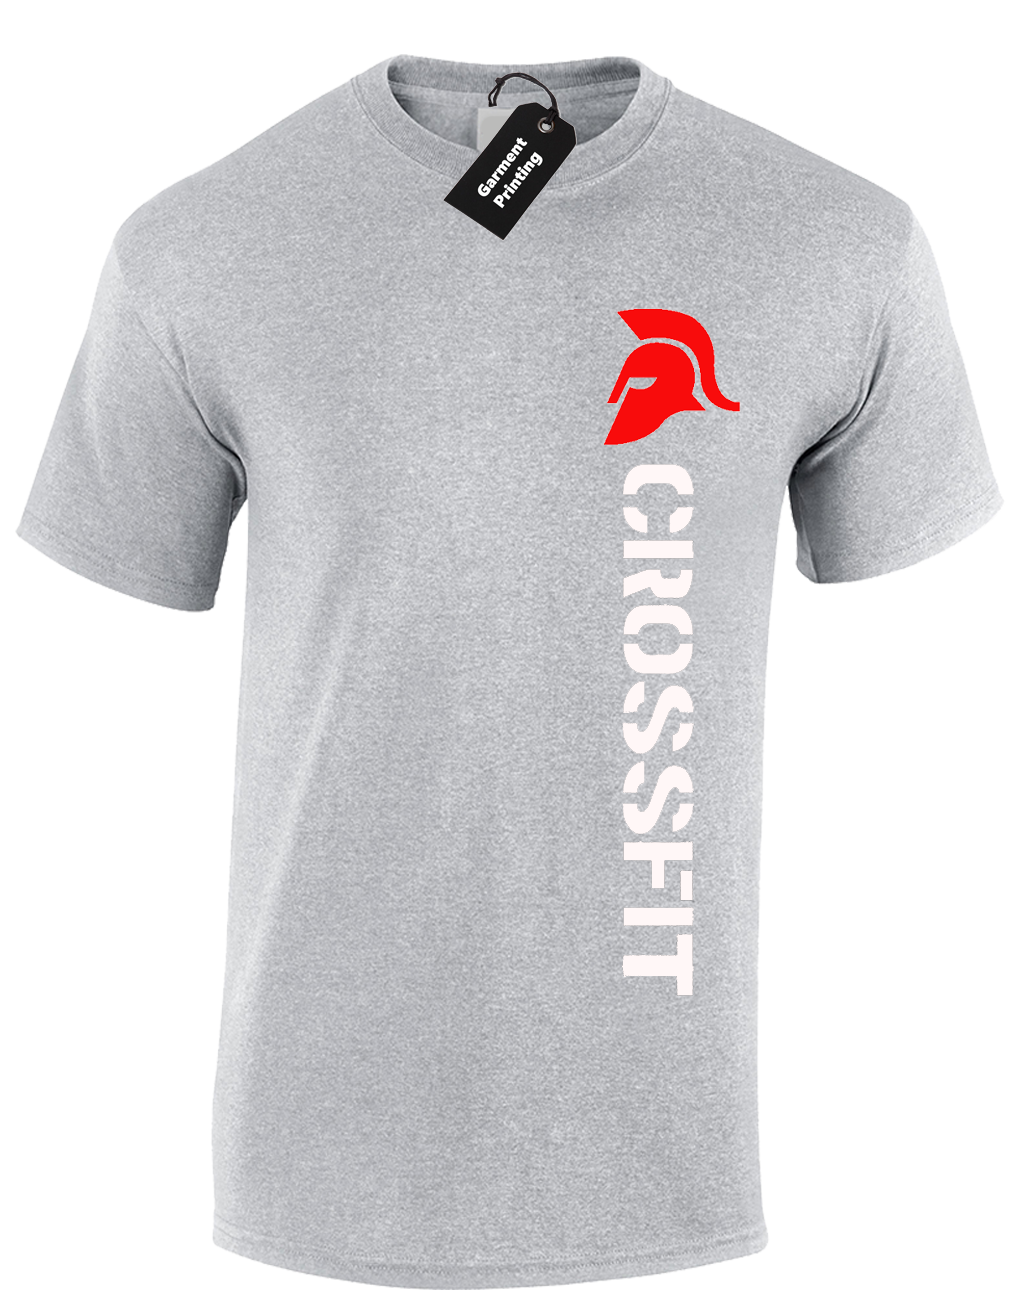 e478ba91f Crossfit Spartan Mens T-Shirt Training Top For Gym Weights Running Fitness  7 7 of 12 ...